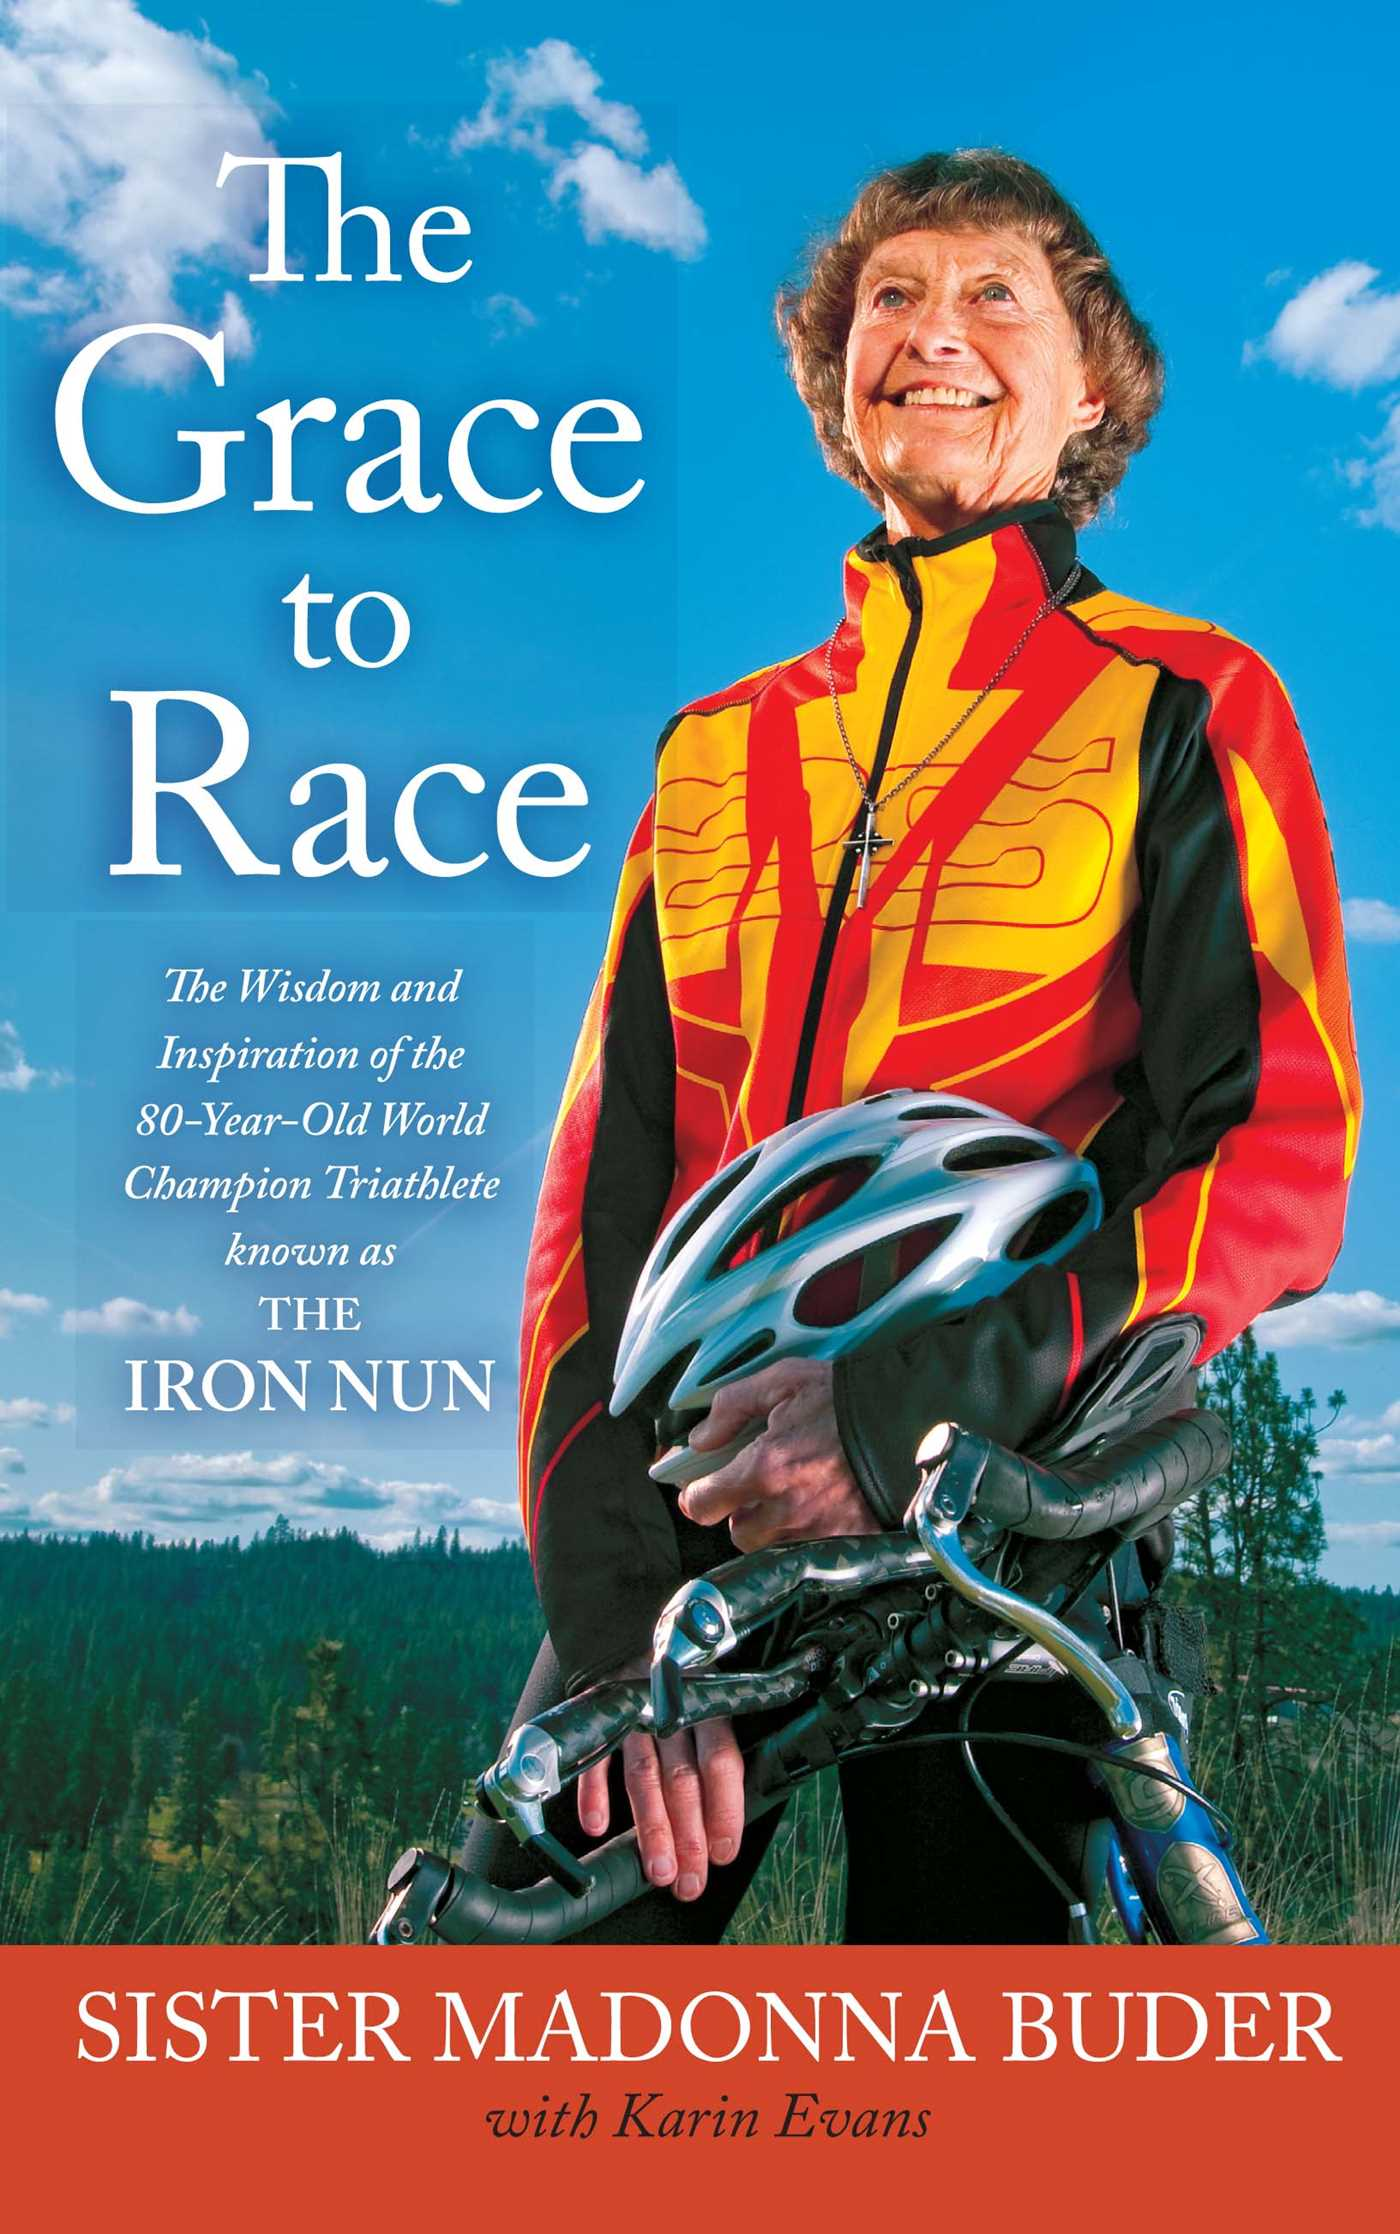 The-grace-to-race-9781439177501_hr